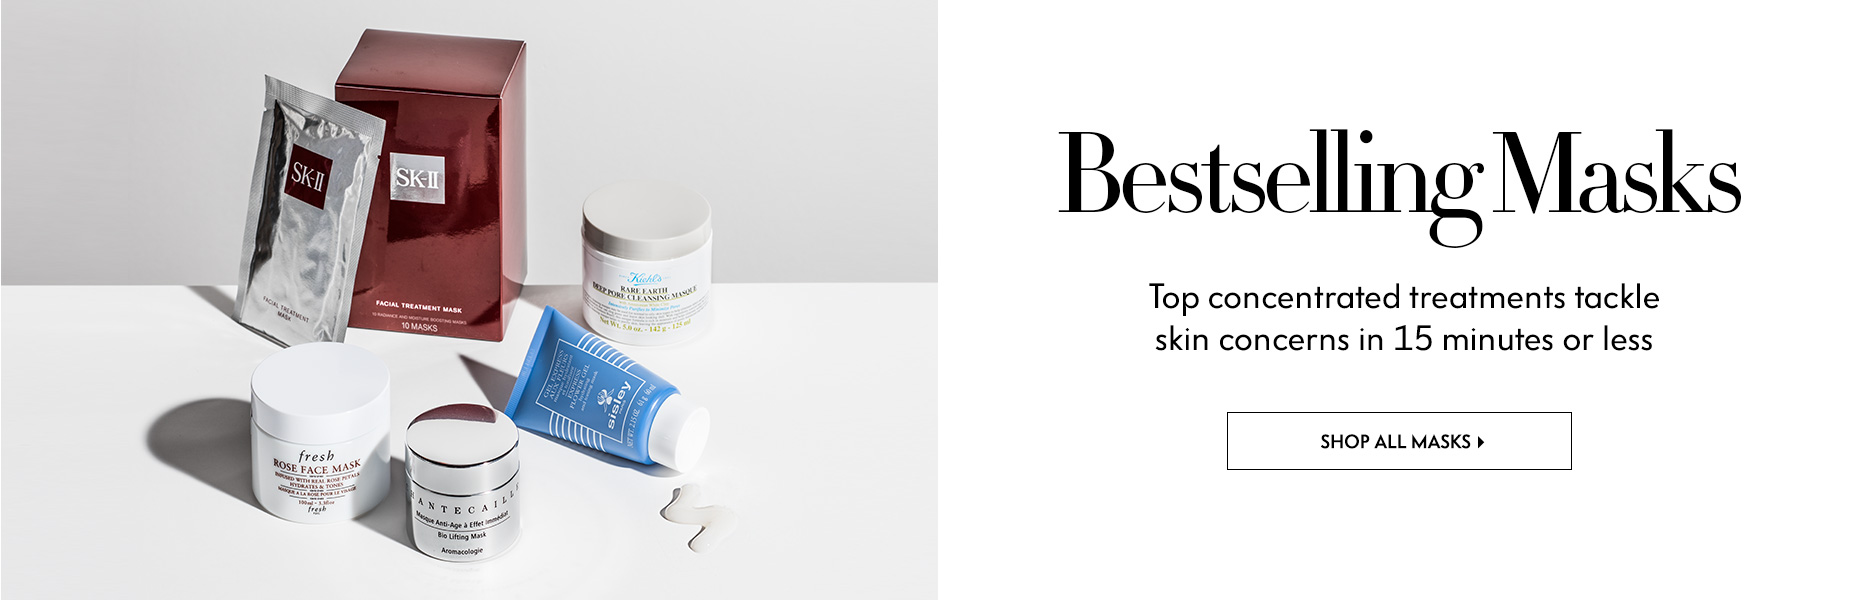 Masks - Top concentrated treatments tackle skin concerns in 15 minutes or less